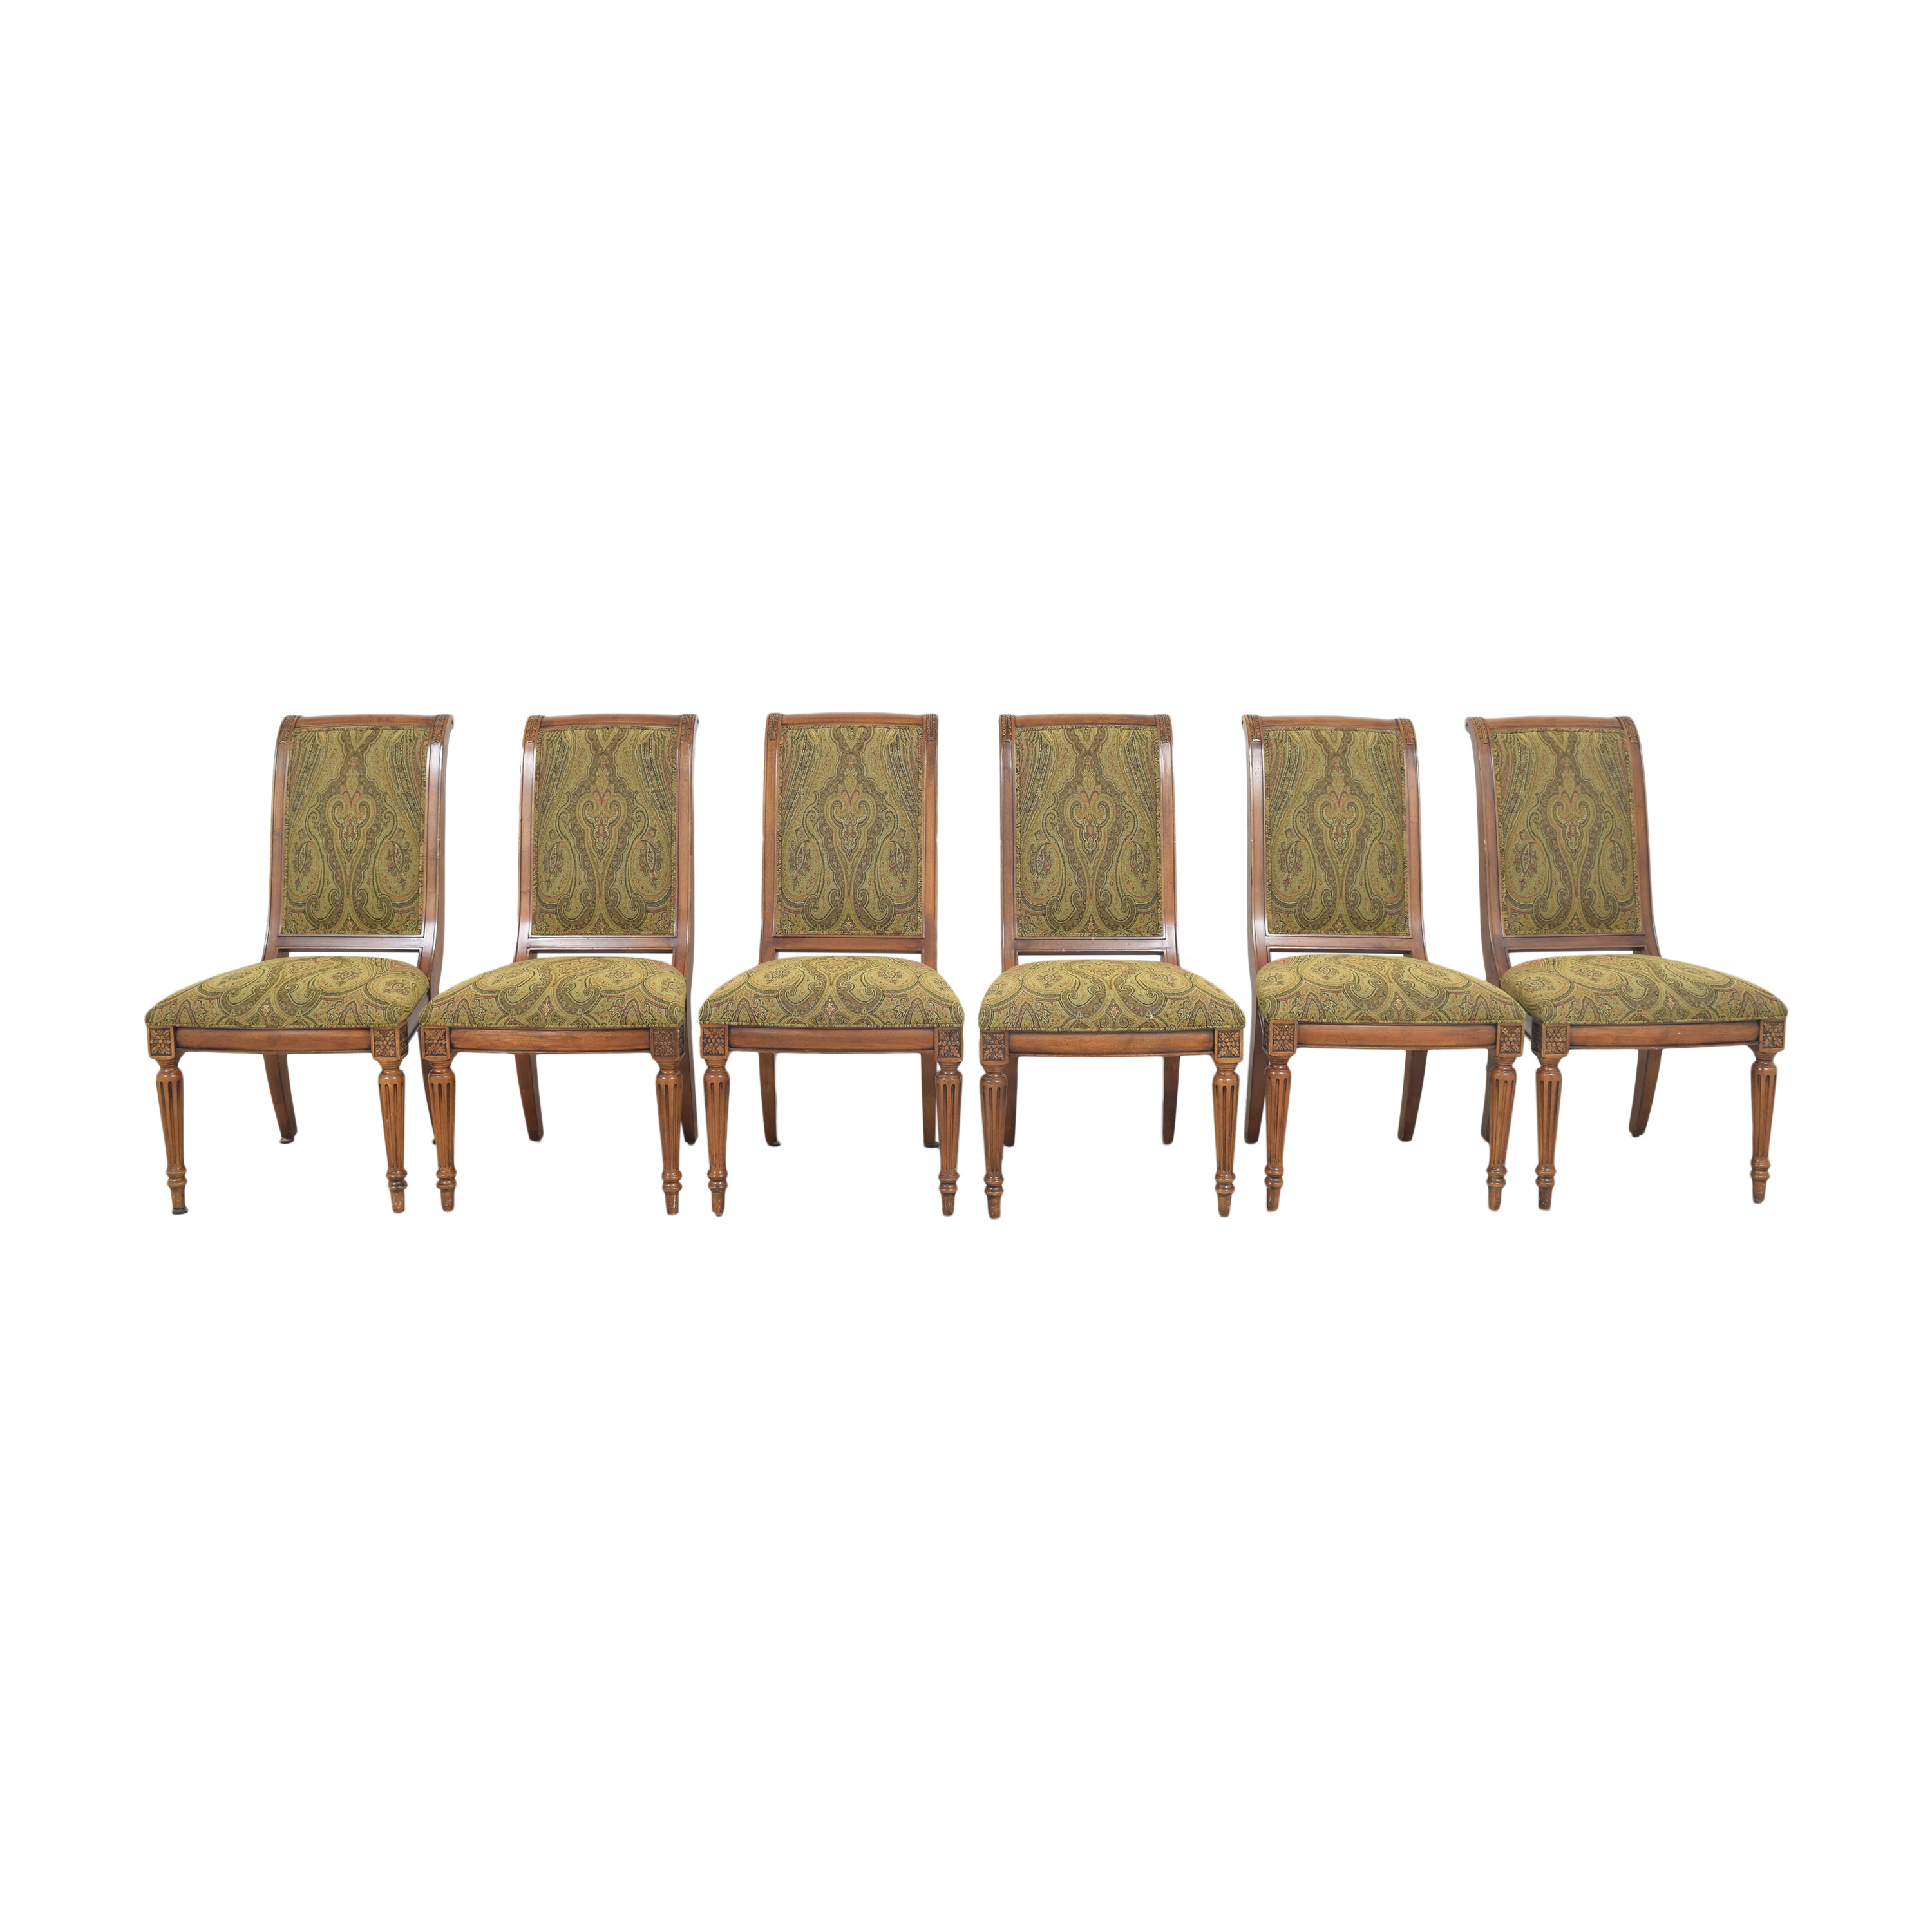 Ethan Allen Ethan Allen Adison Dining Side Chairs second hand